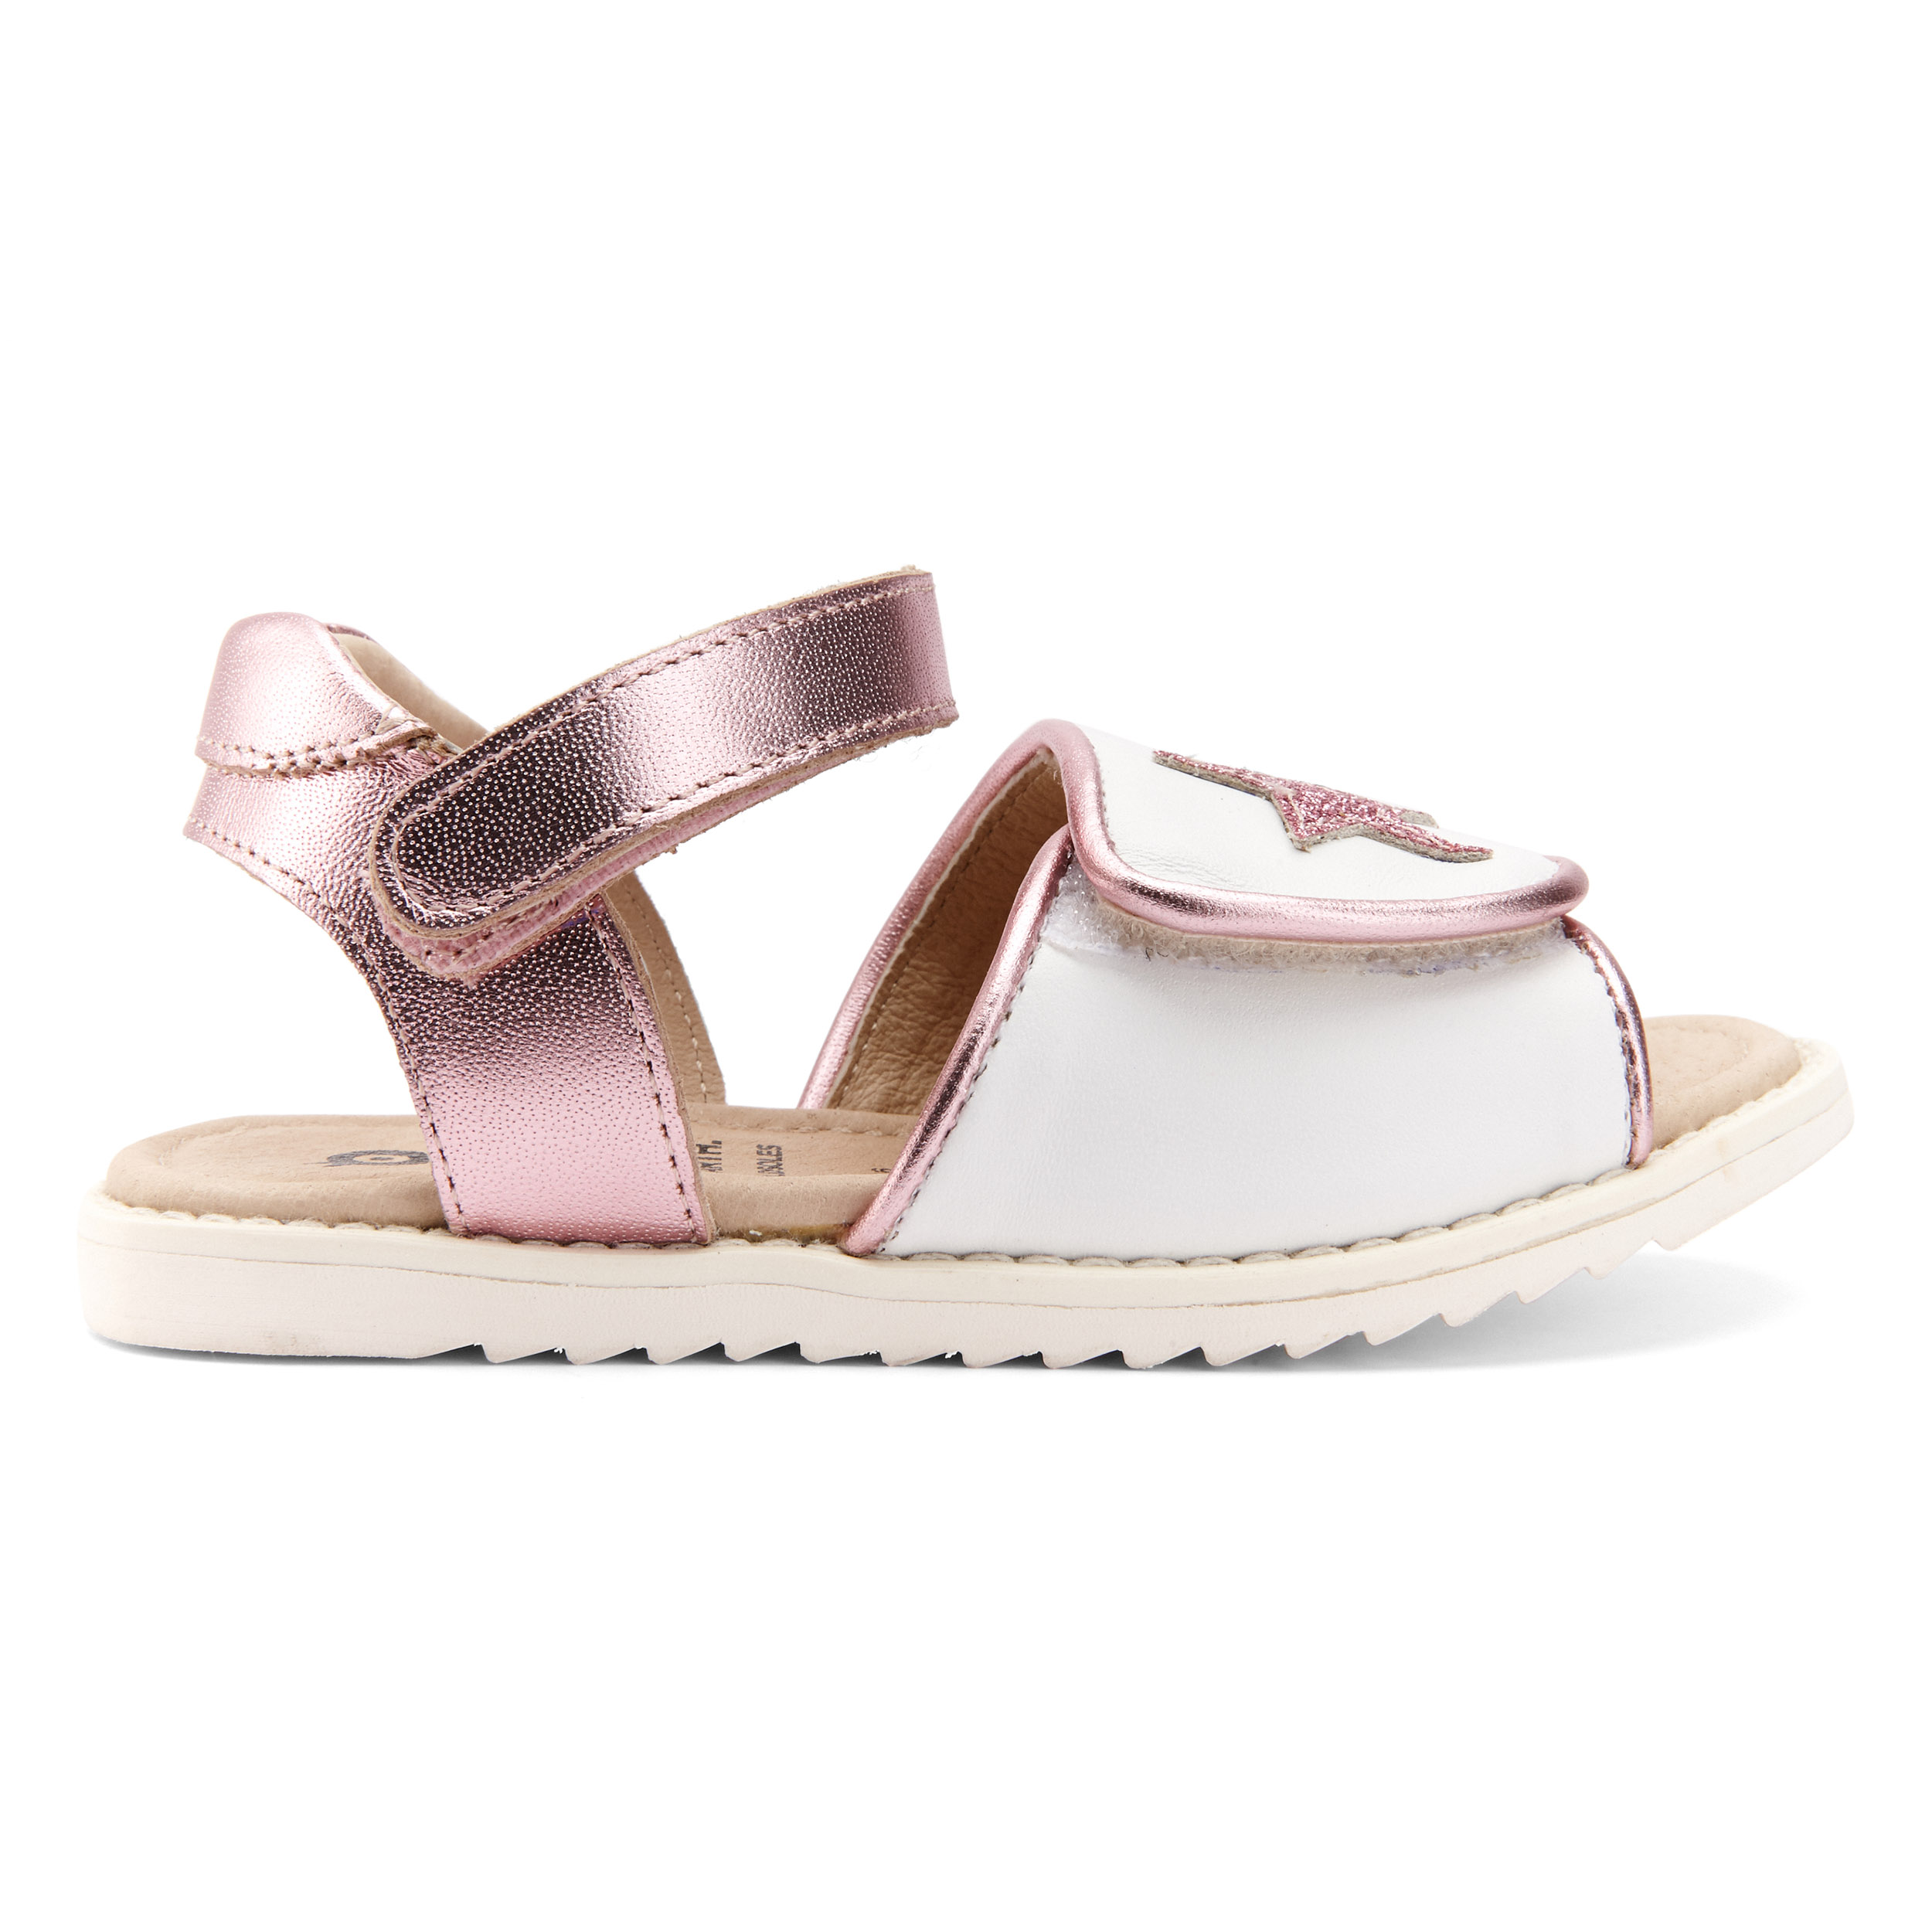 OLD SOLES 'Stars' Sandals 7030